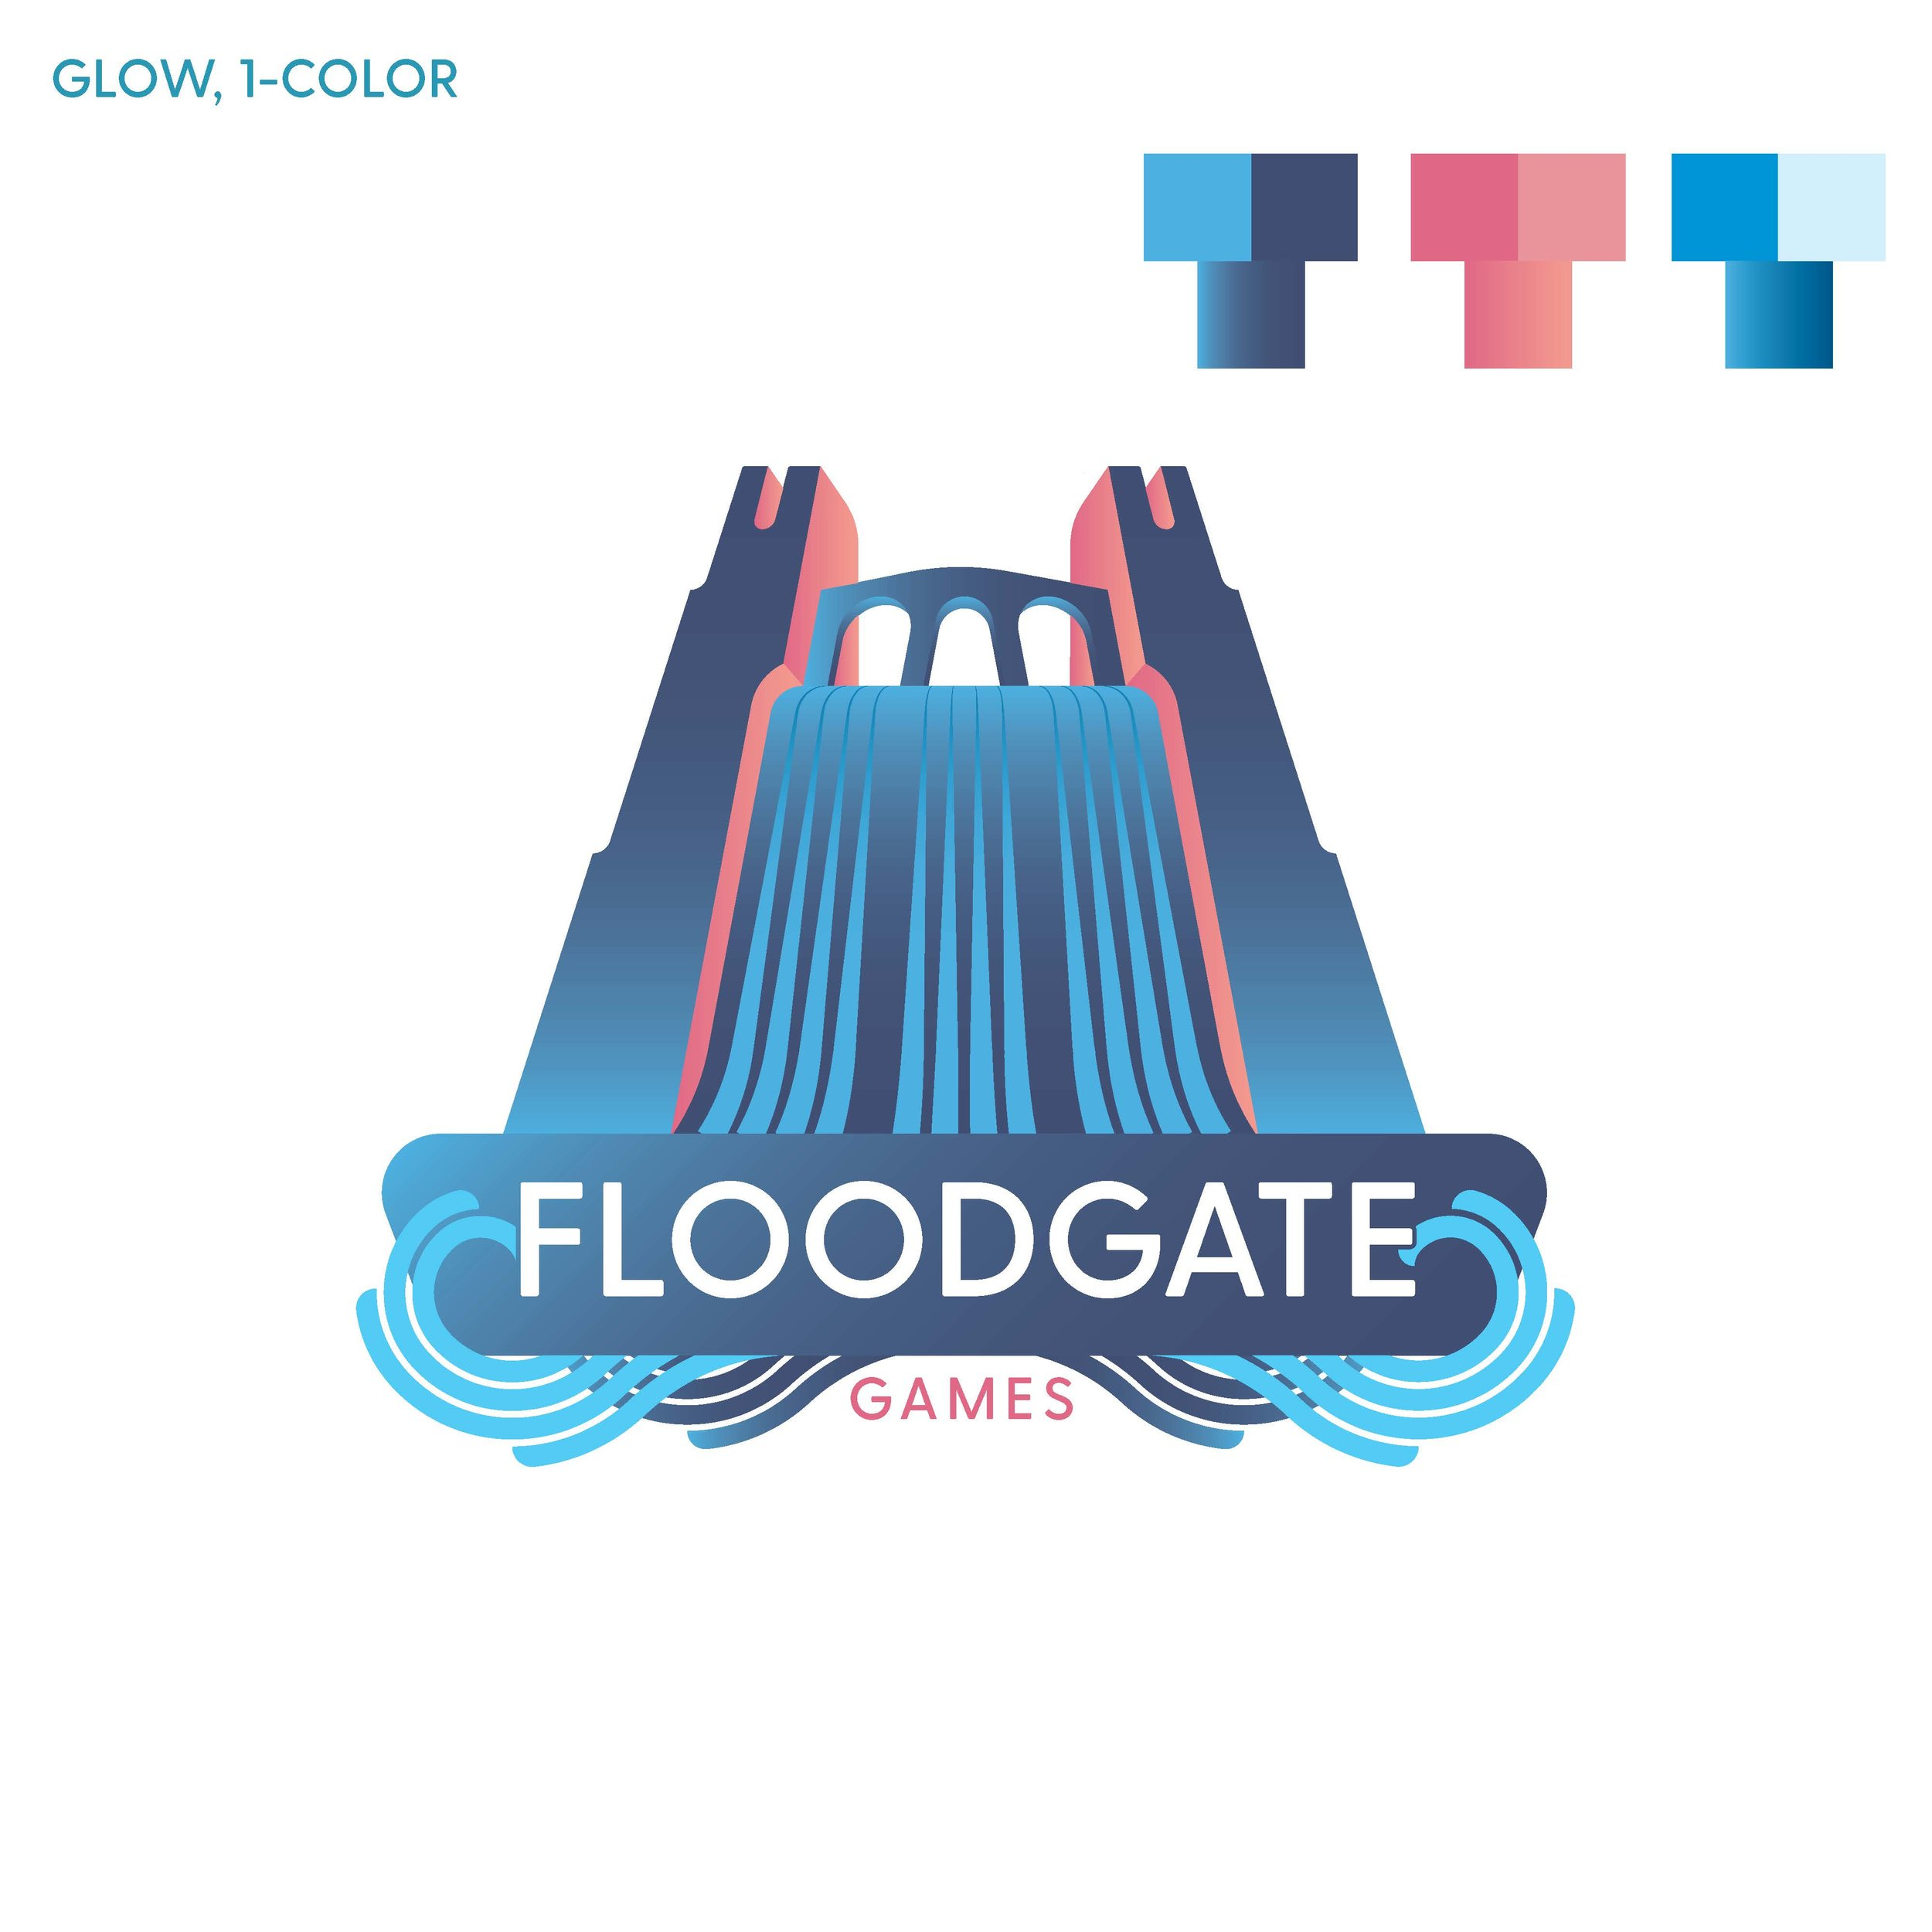 Floodgate_Logo2_V6_COLORS_Page_07.jpg